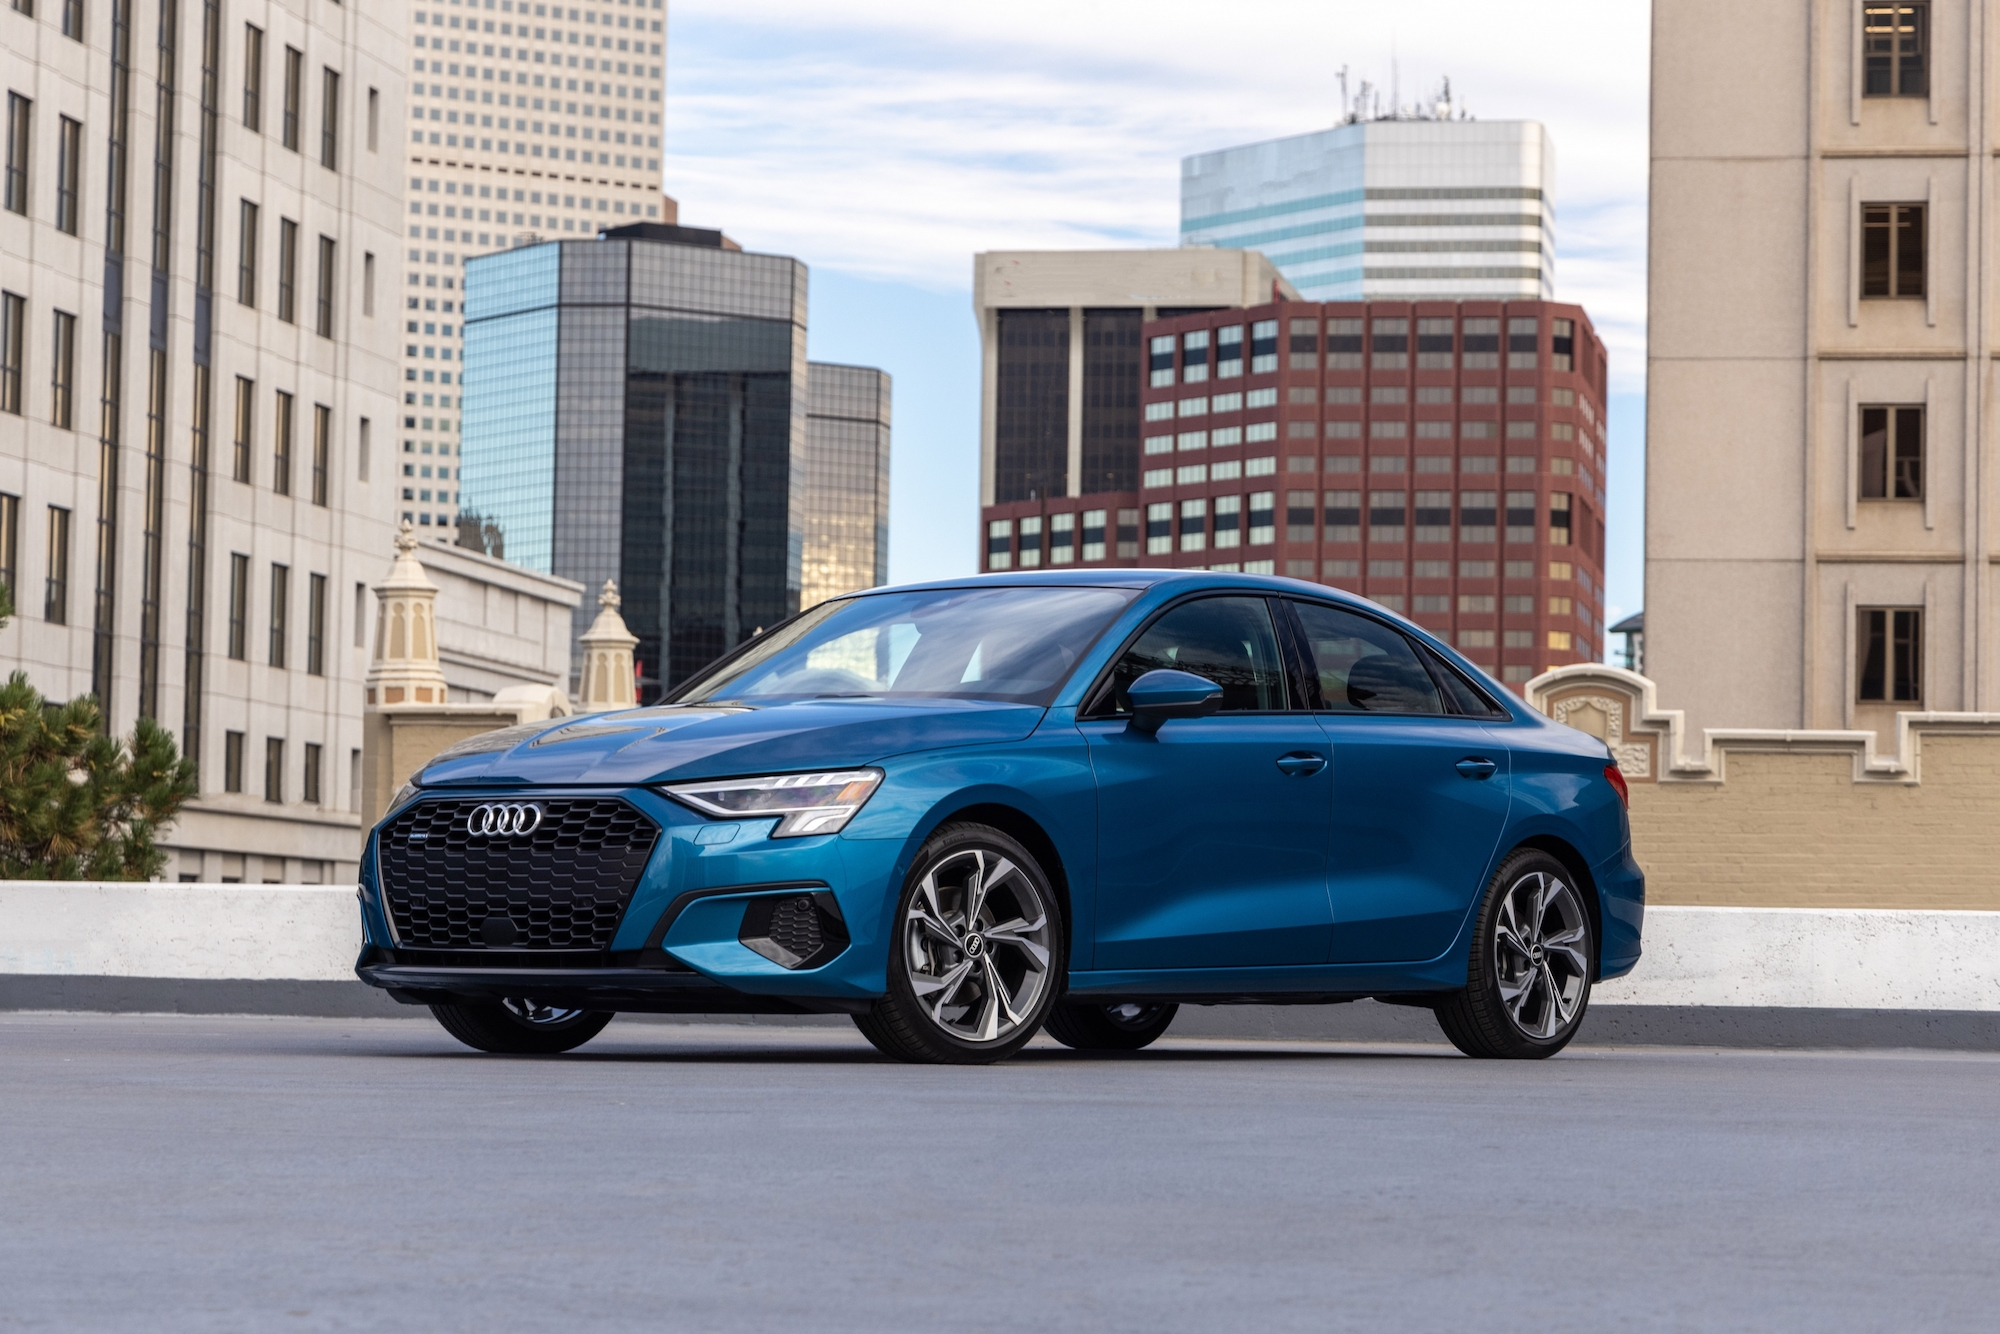 All-New 2022 Audi A3 Arrives With New Tech And Up To 306-Horspower